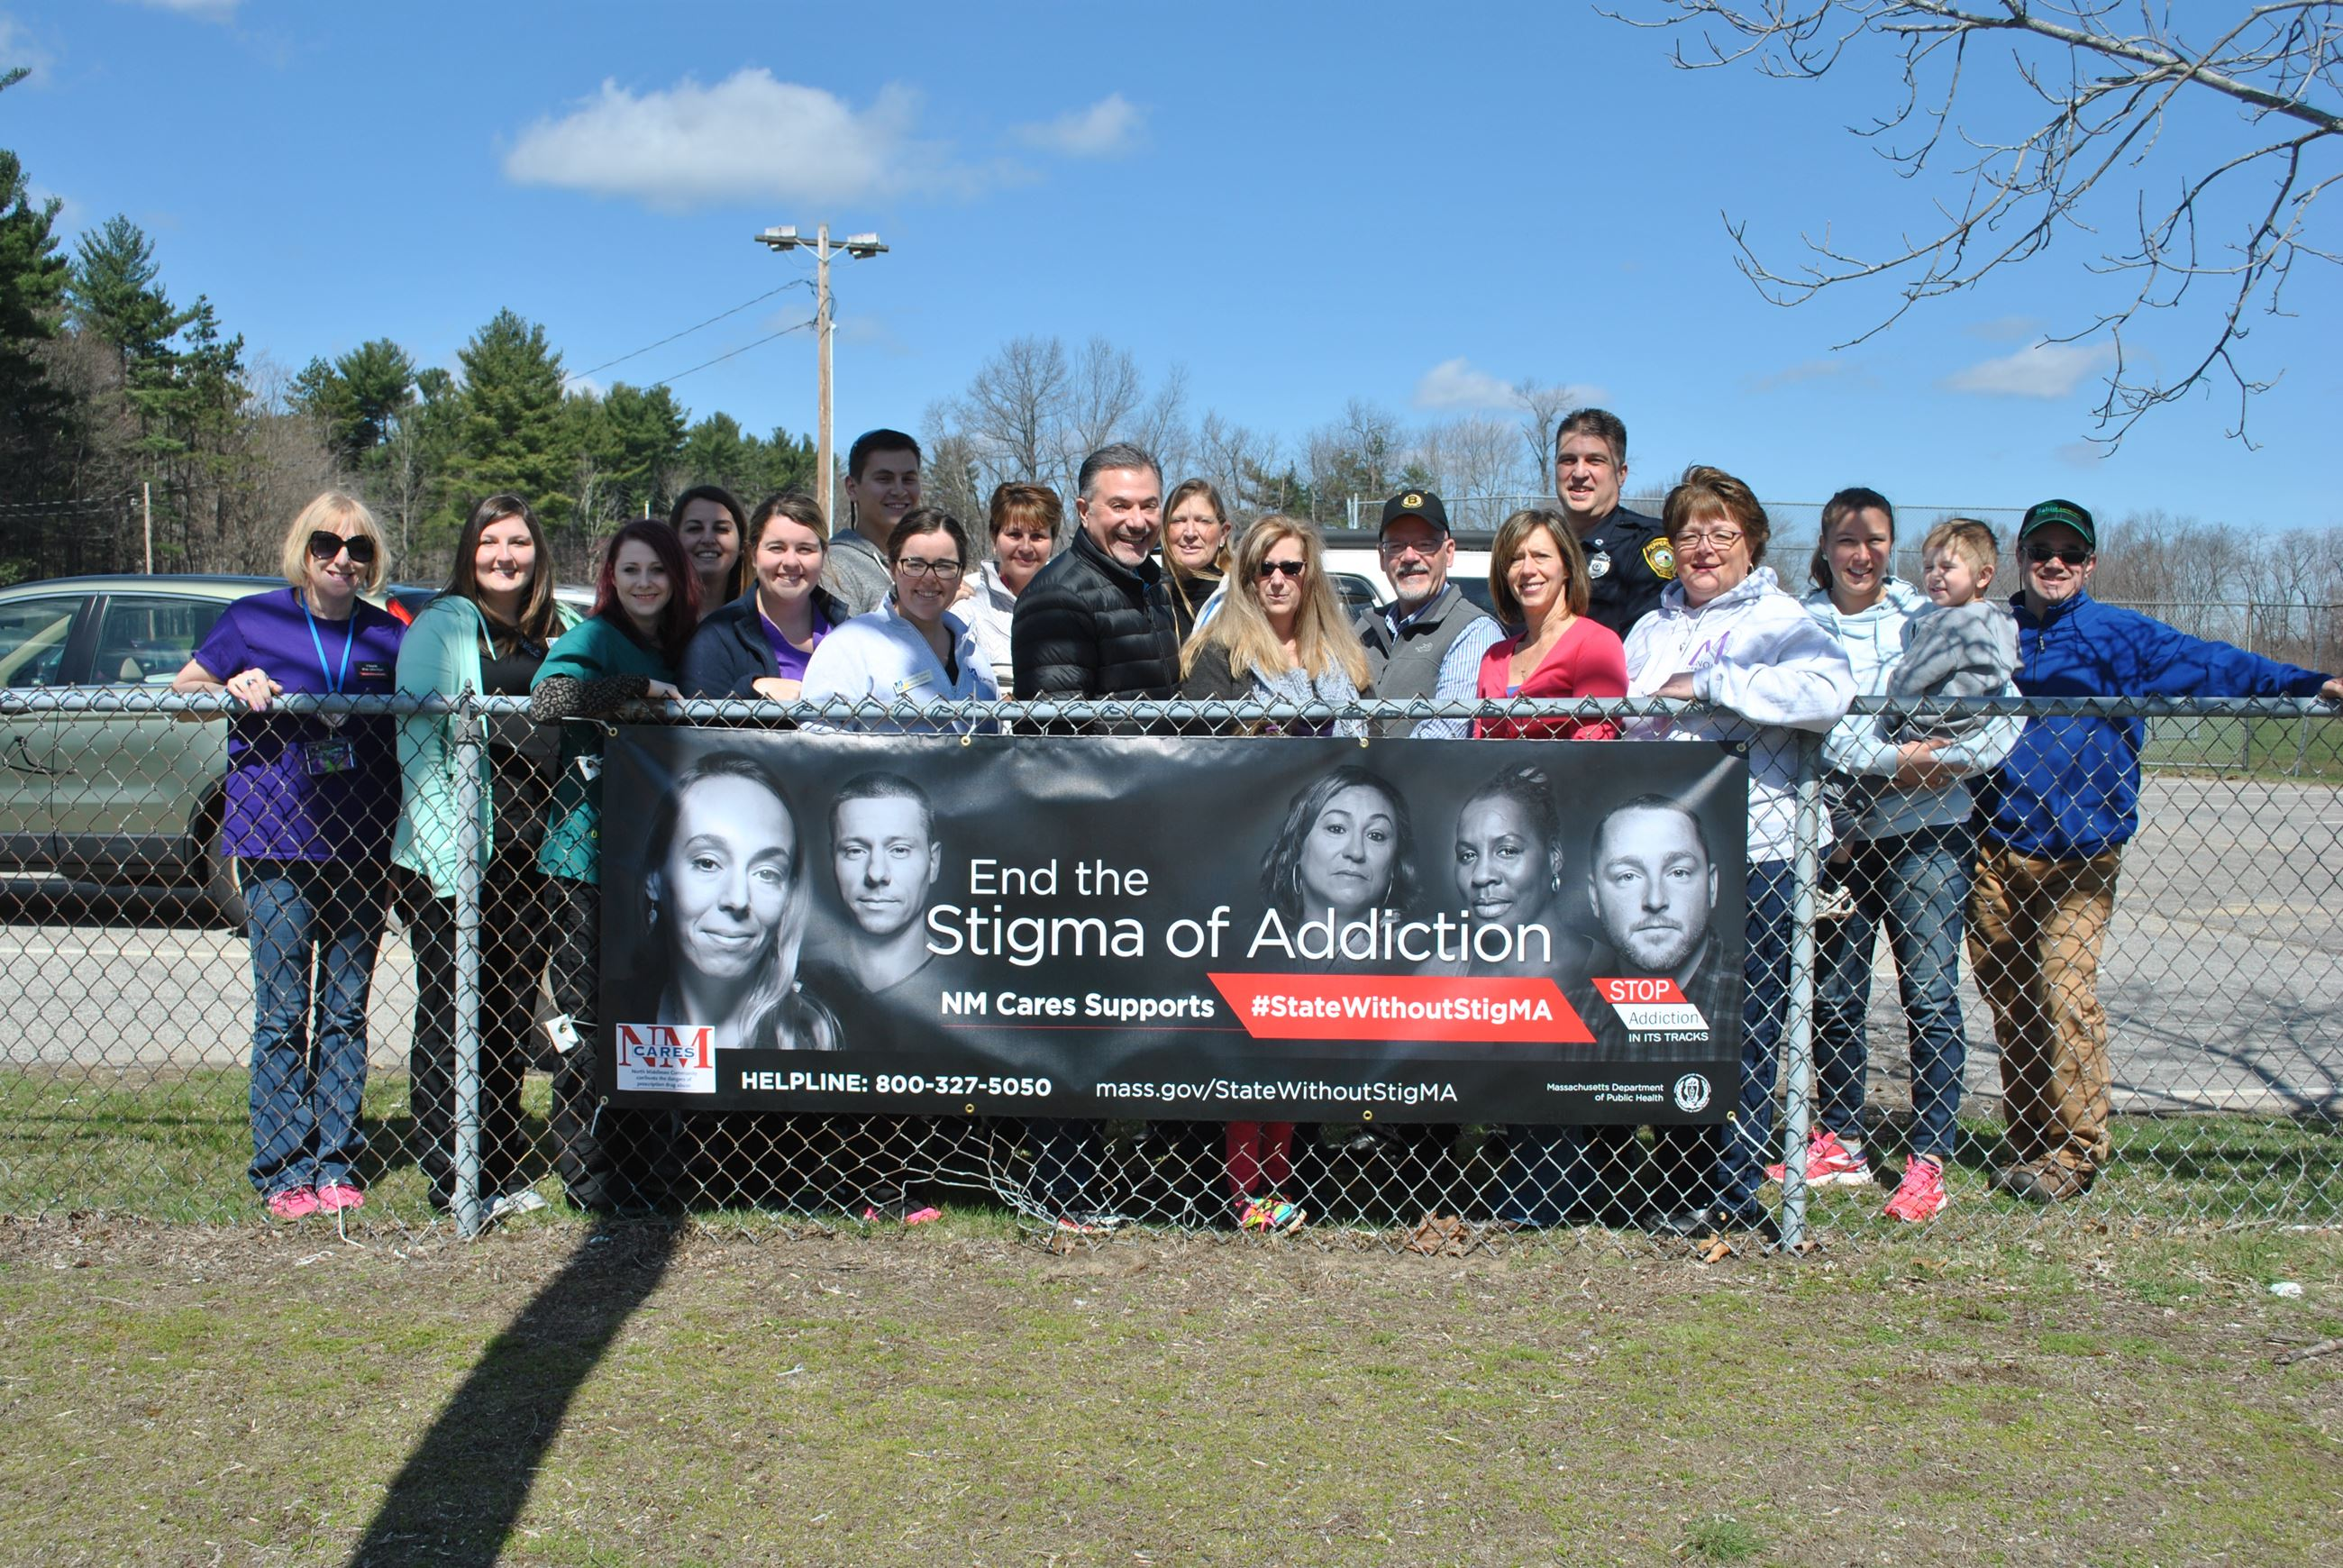 NM Cares Drug Awareness and Prevention Event - Community Banner